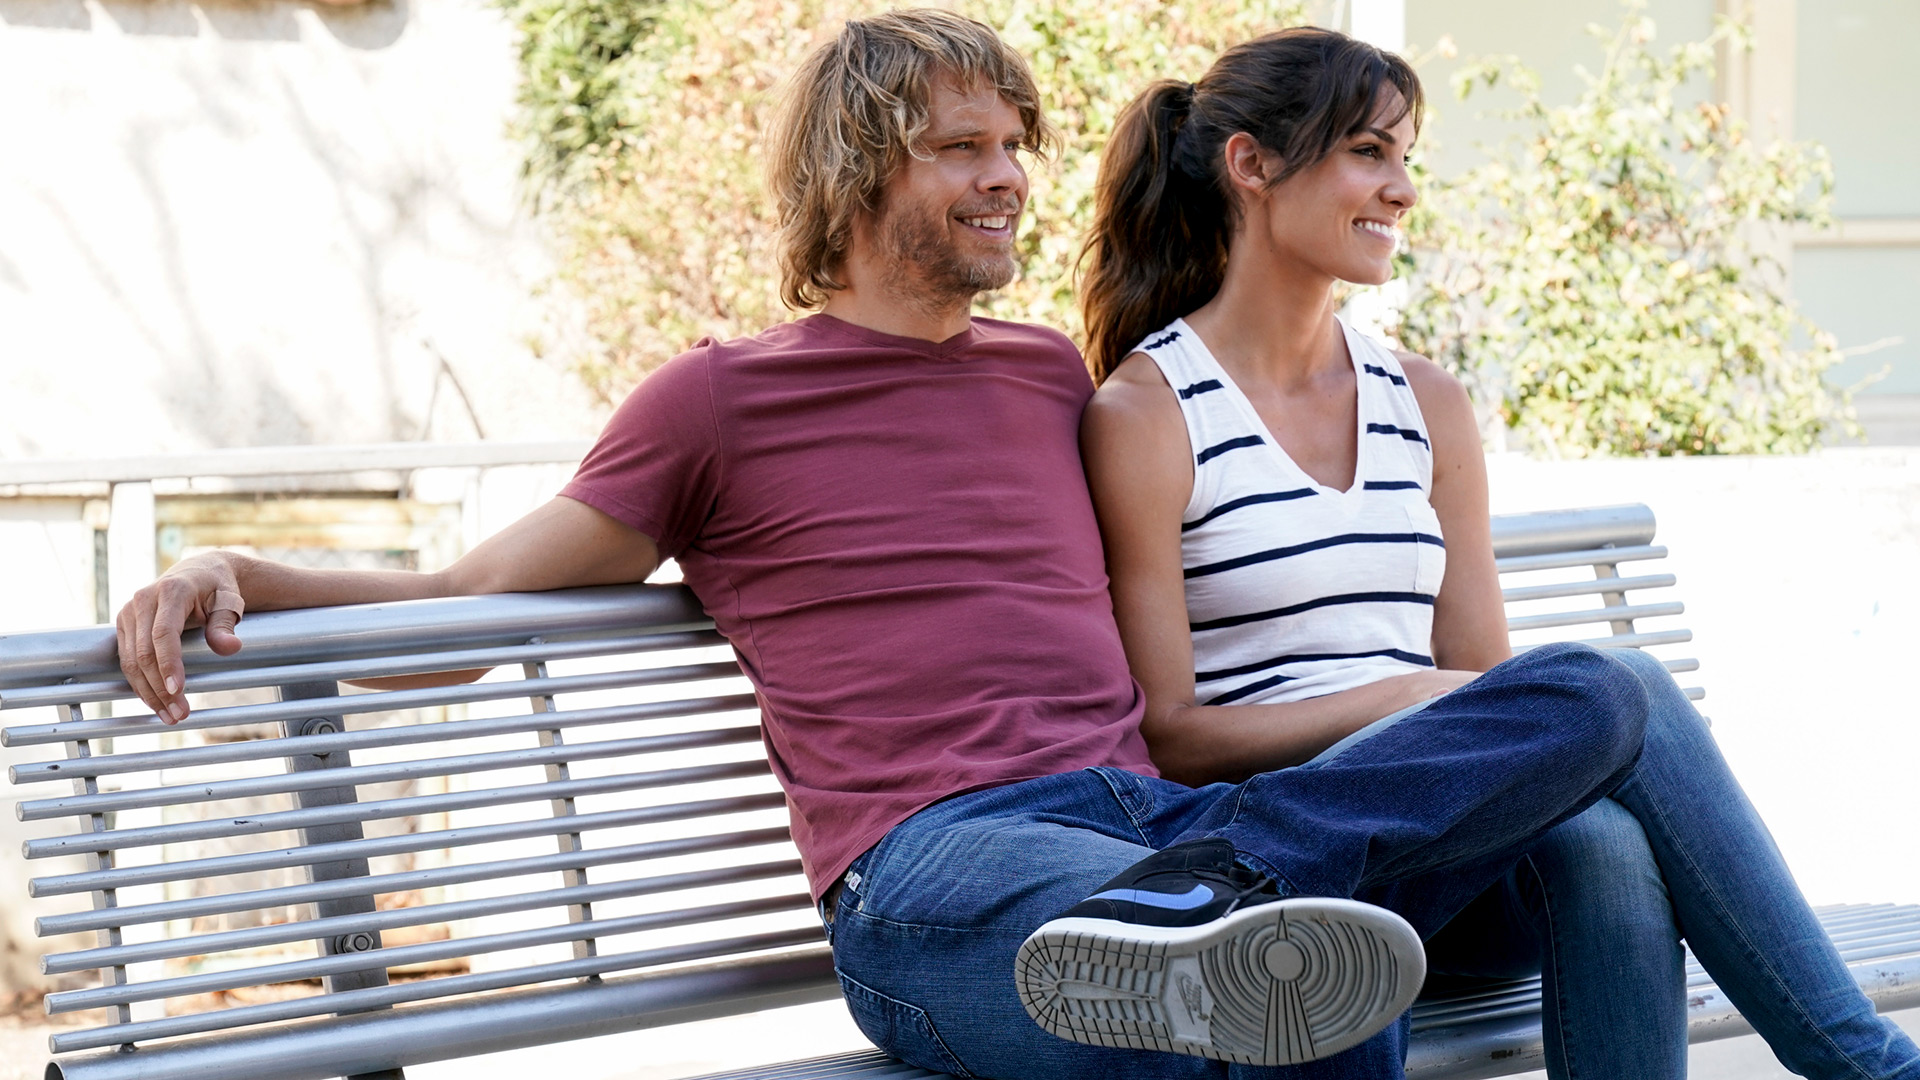 Marty Deeks and Kensi Blye